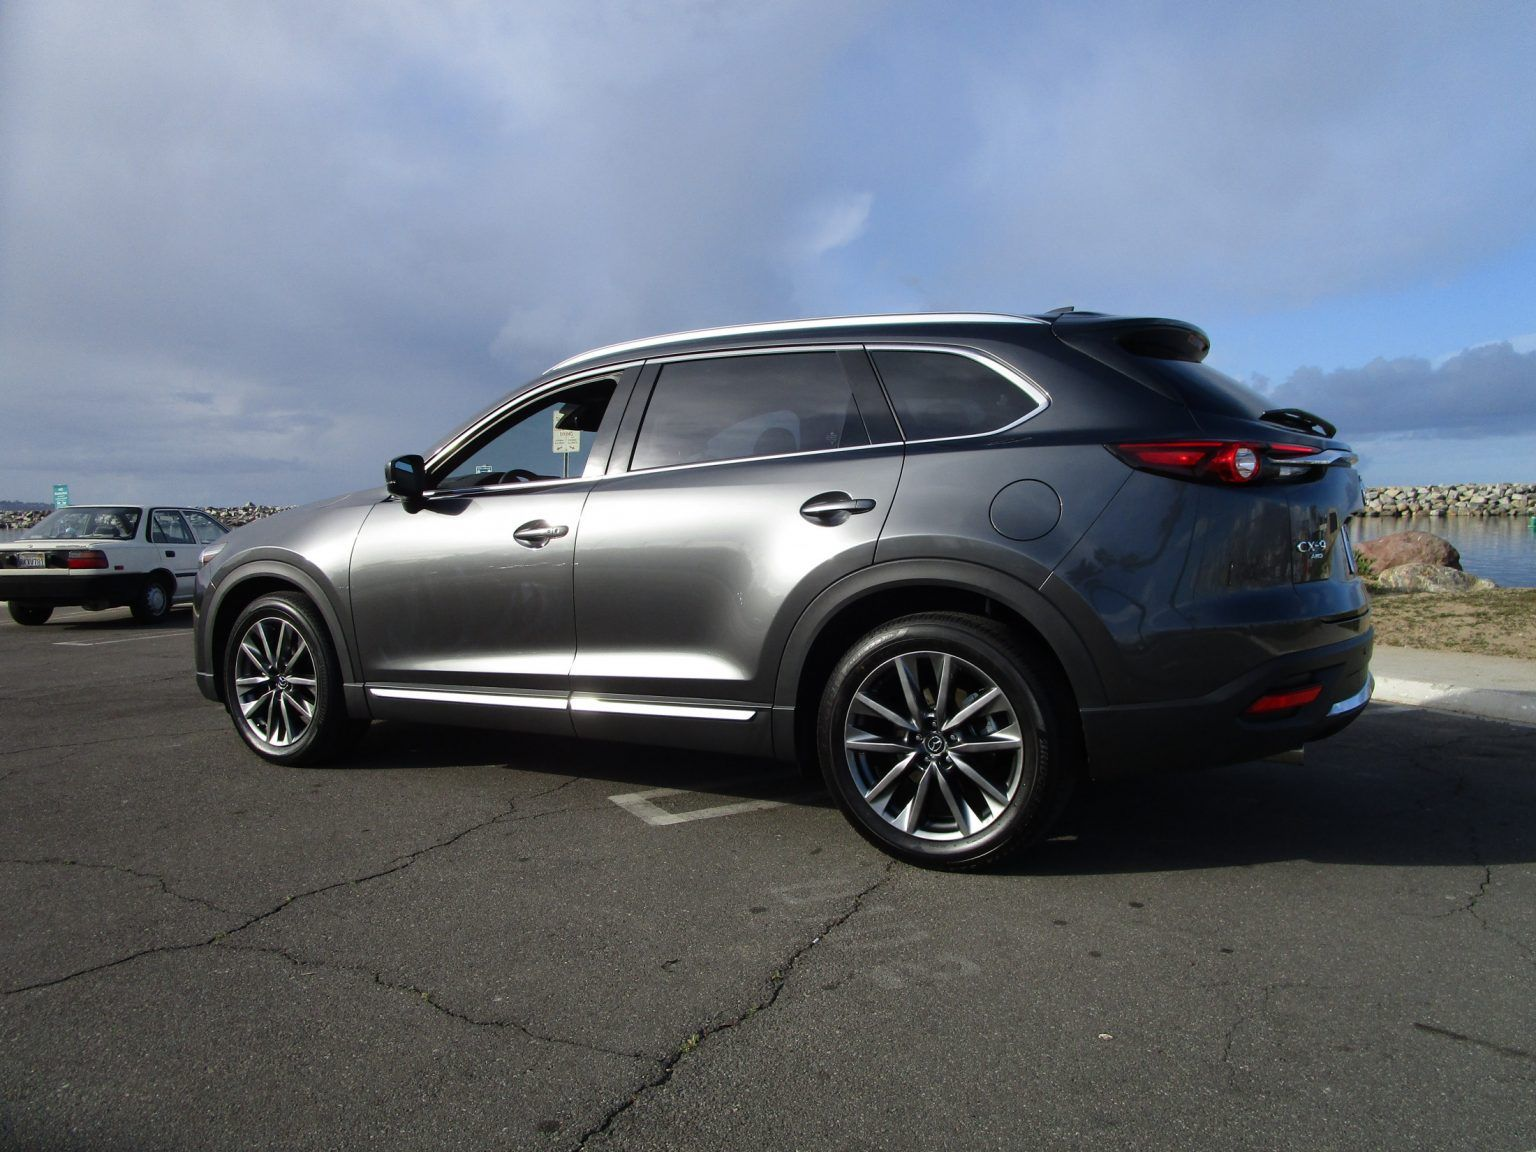 2020 Mazda CX9 Signature AWD by Ben Lewis » LATEST NEWS